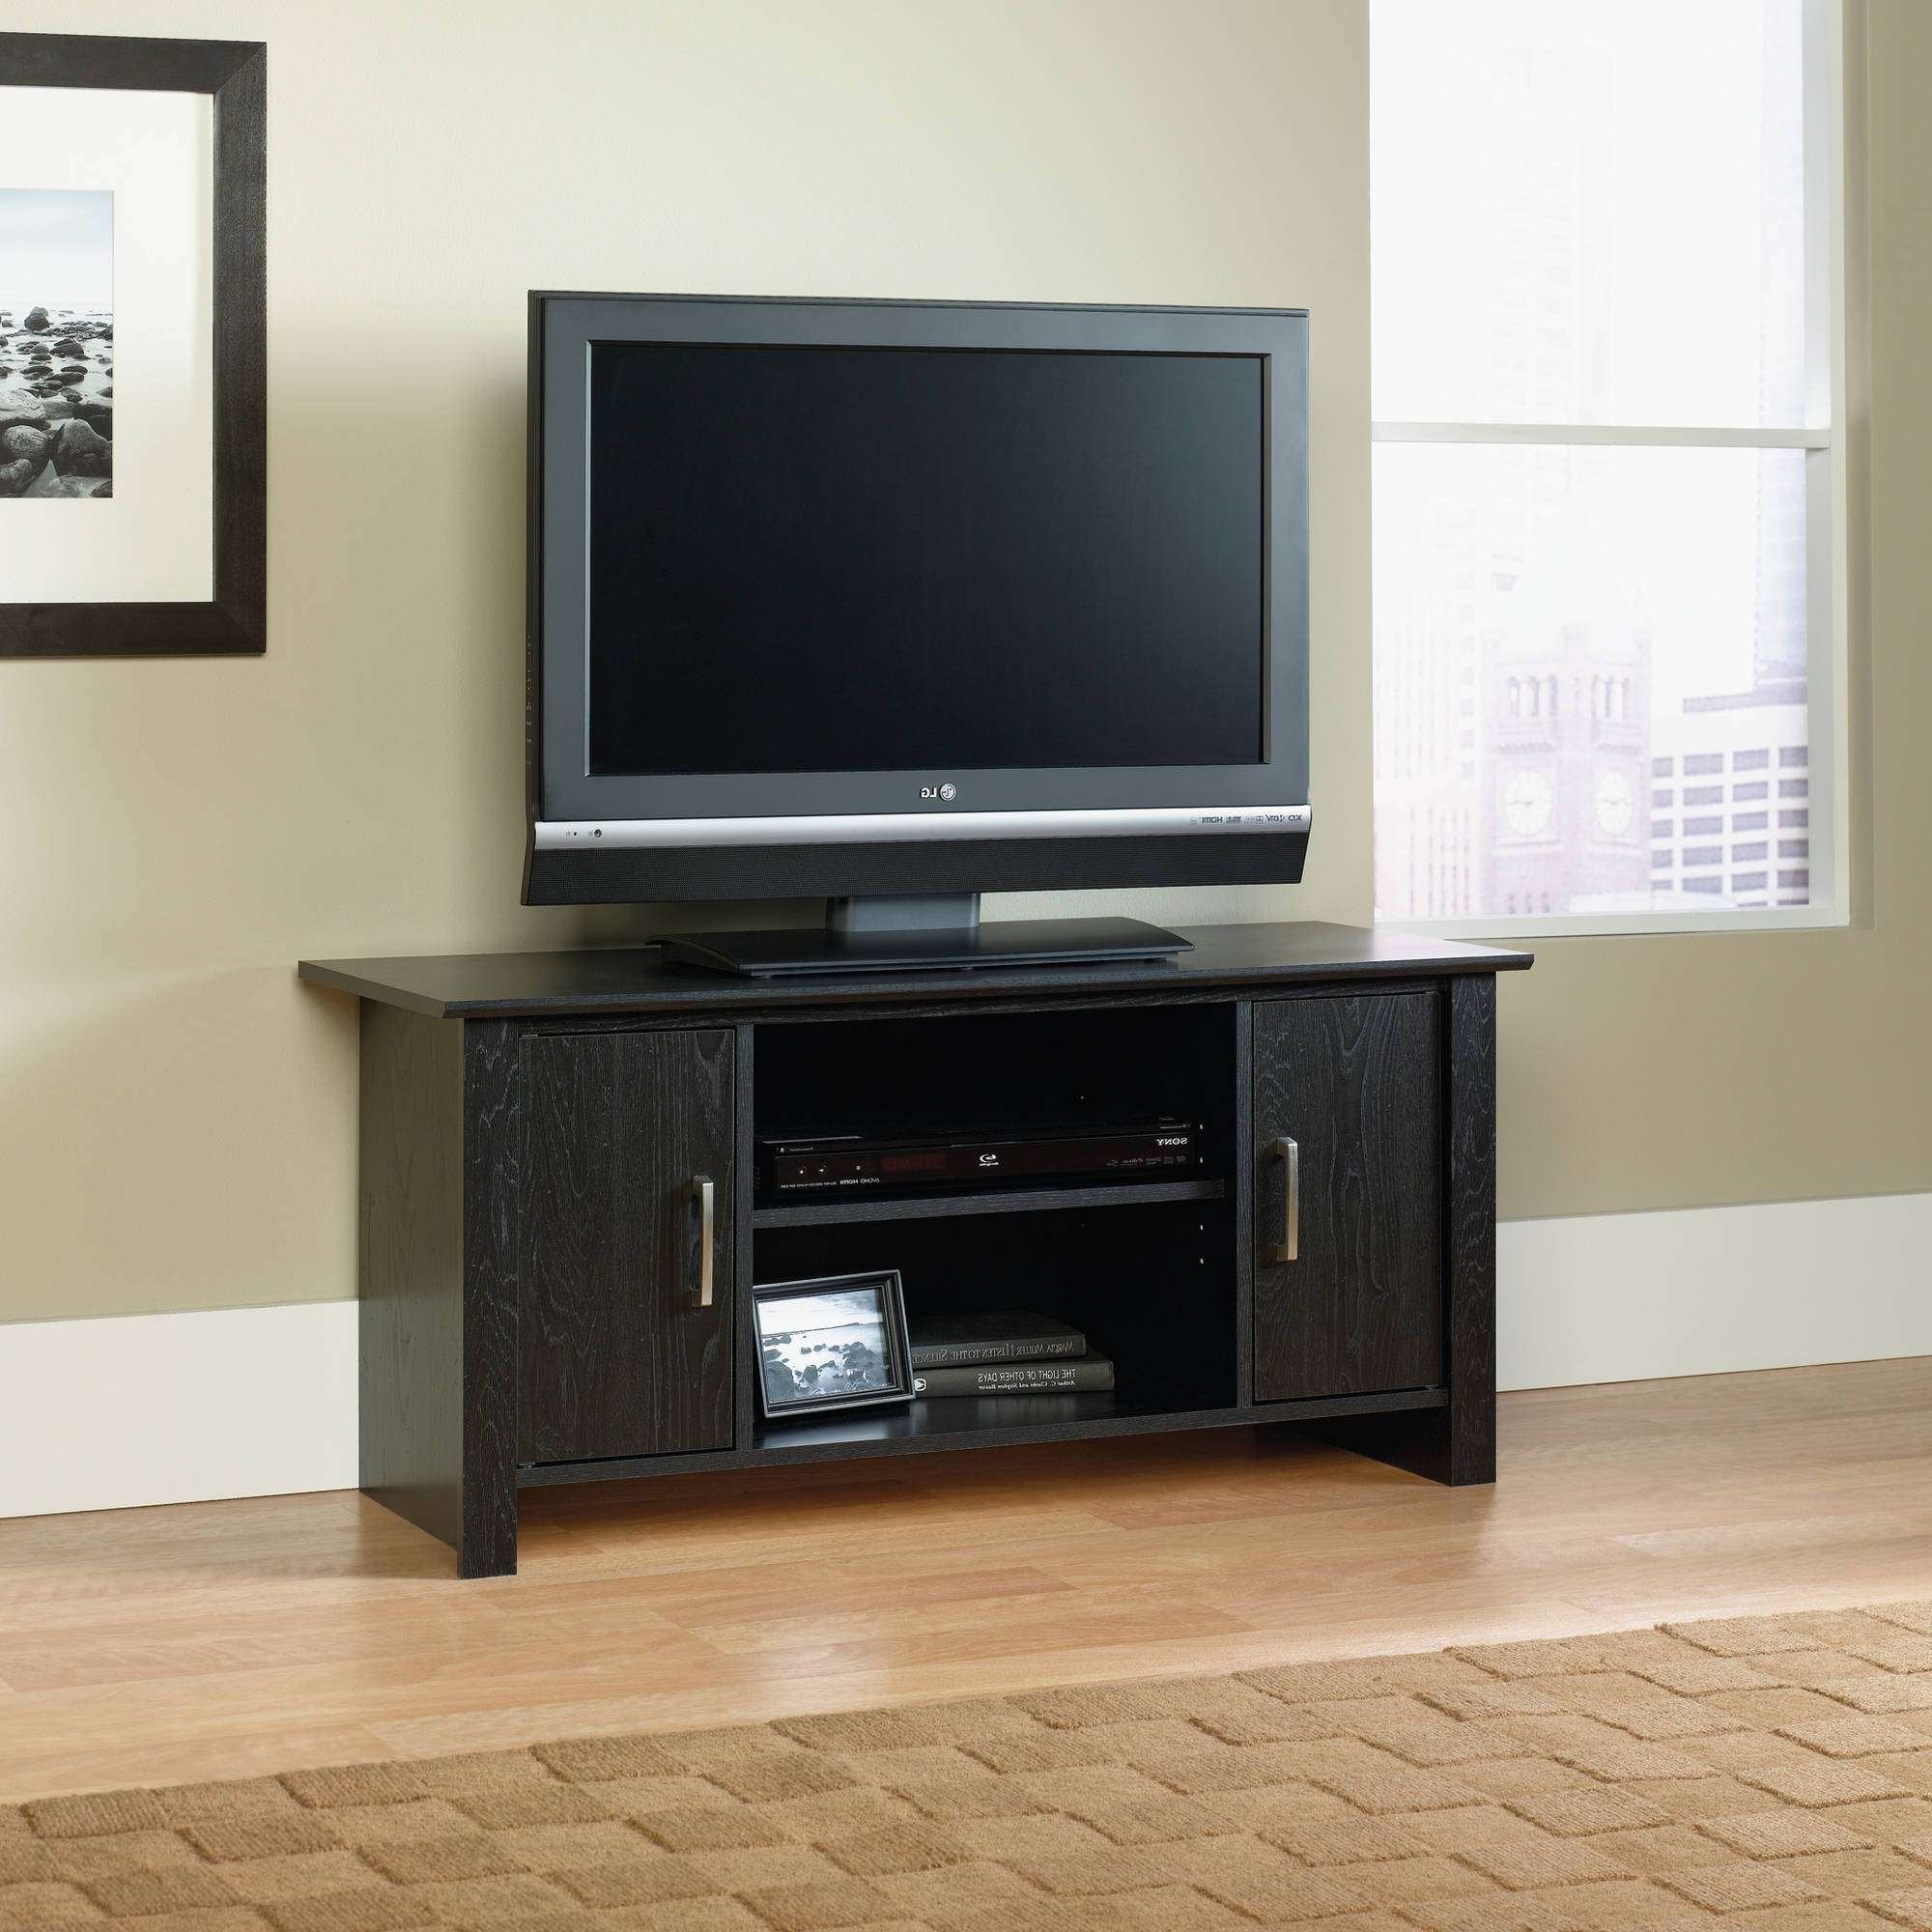 "Mainstays Tv Stand For Flat Screen Tvs Up To 47"", Multiple Finish Regarding Single Shelf Tv Stands (View 8 of 15)"